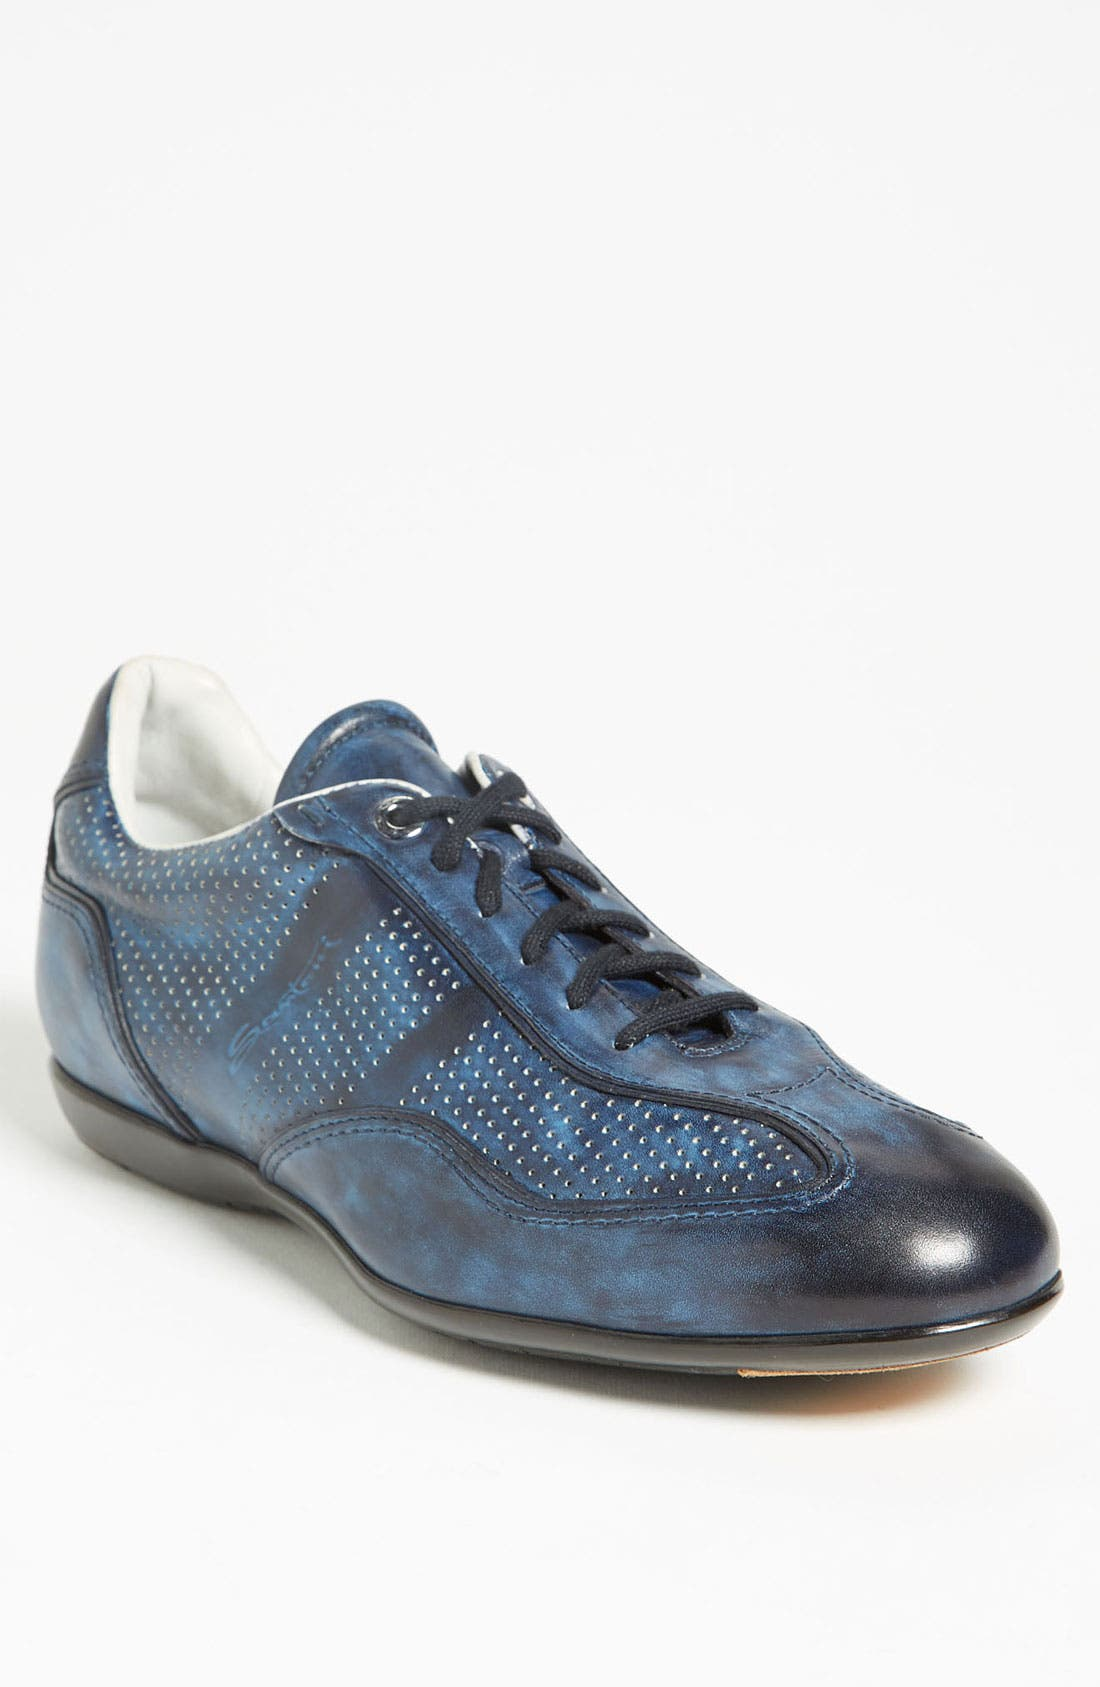 Alternate Image 1 Selected - Santoni 'Striper' Sneaker (Men)